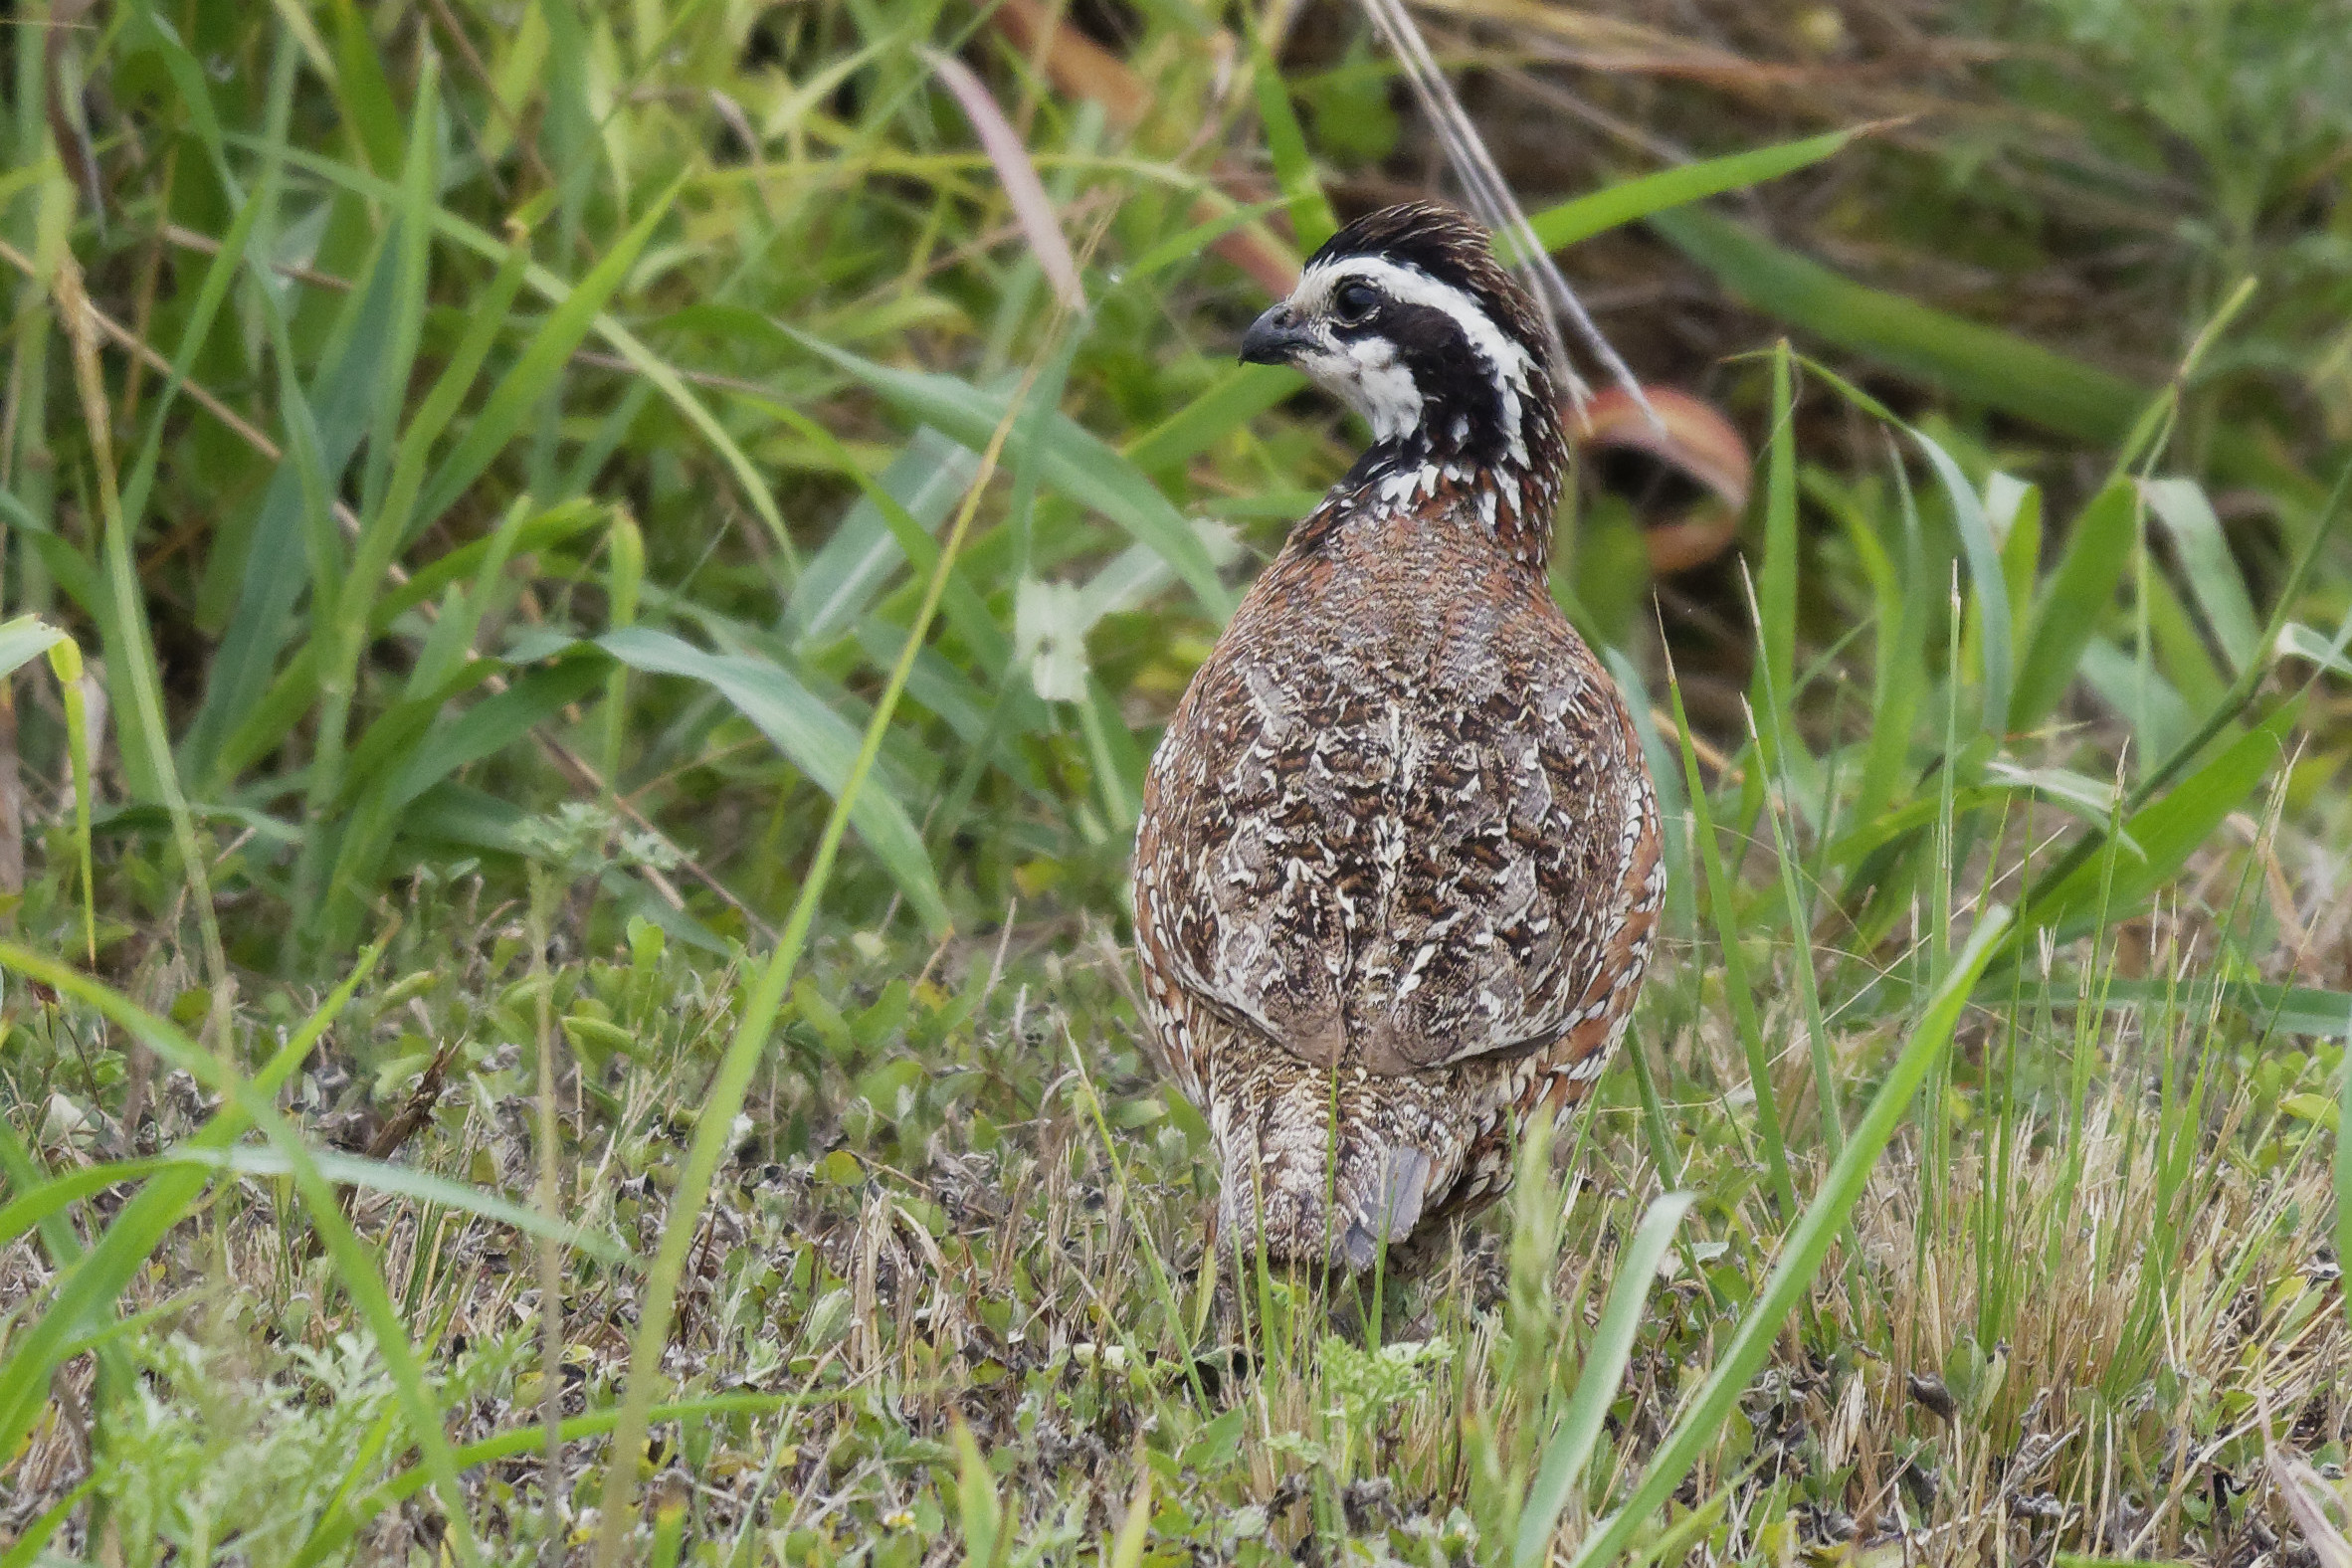 Species: Northern Bobwhite (male) Photo Credit: Dina Perry Date: May 2018 Location: Calaveras Lake